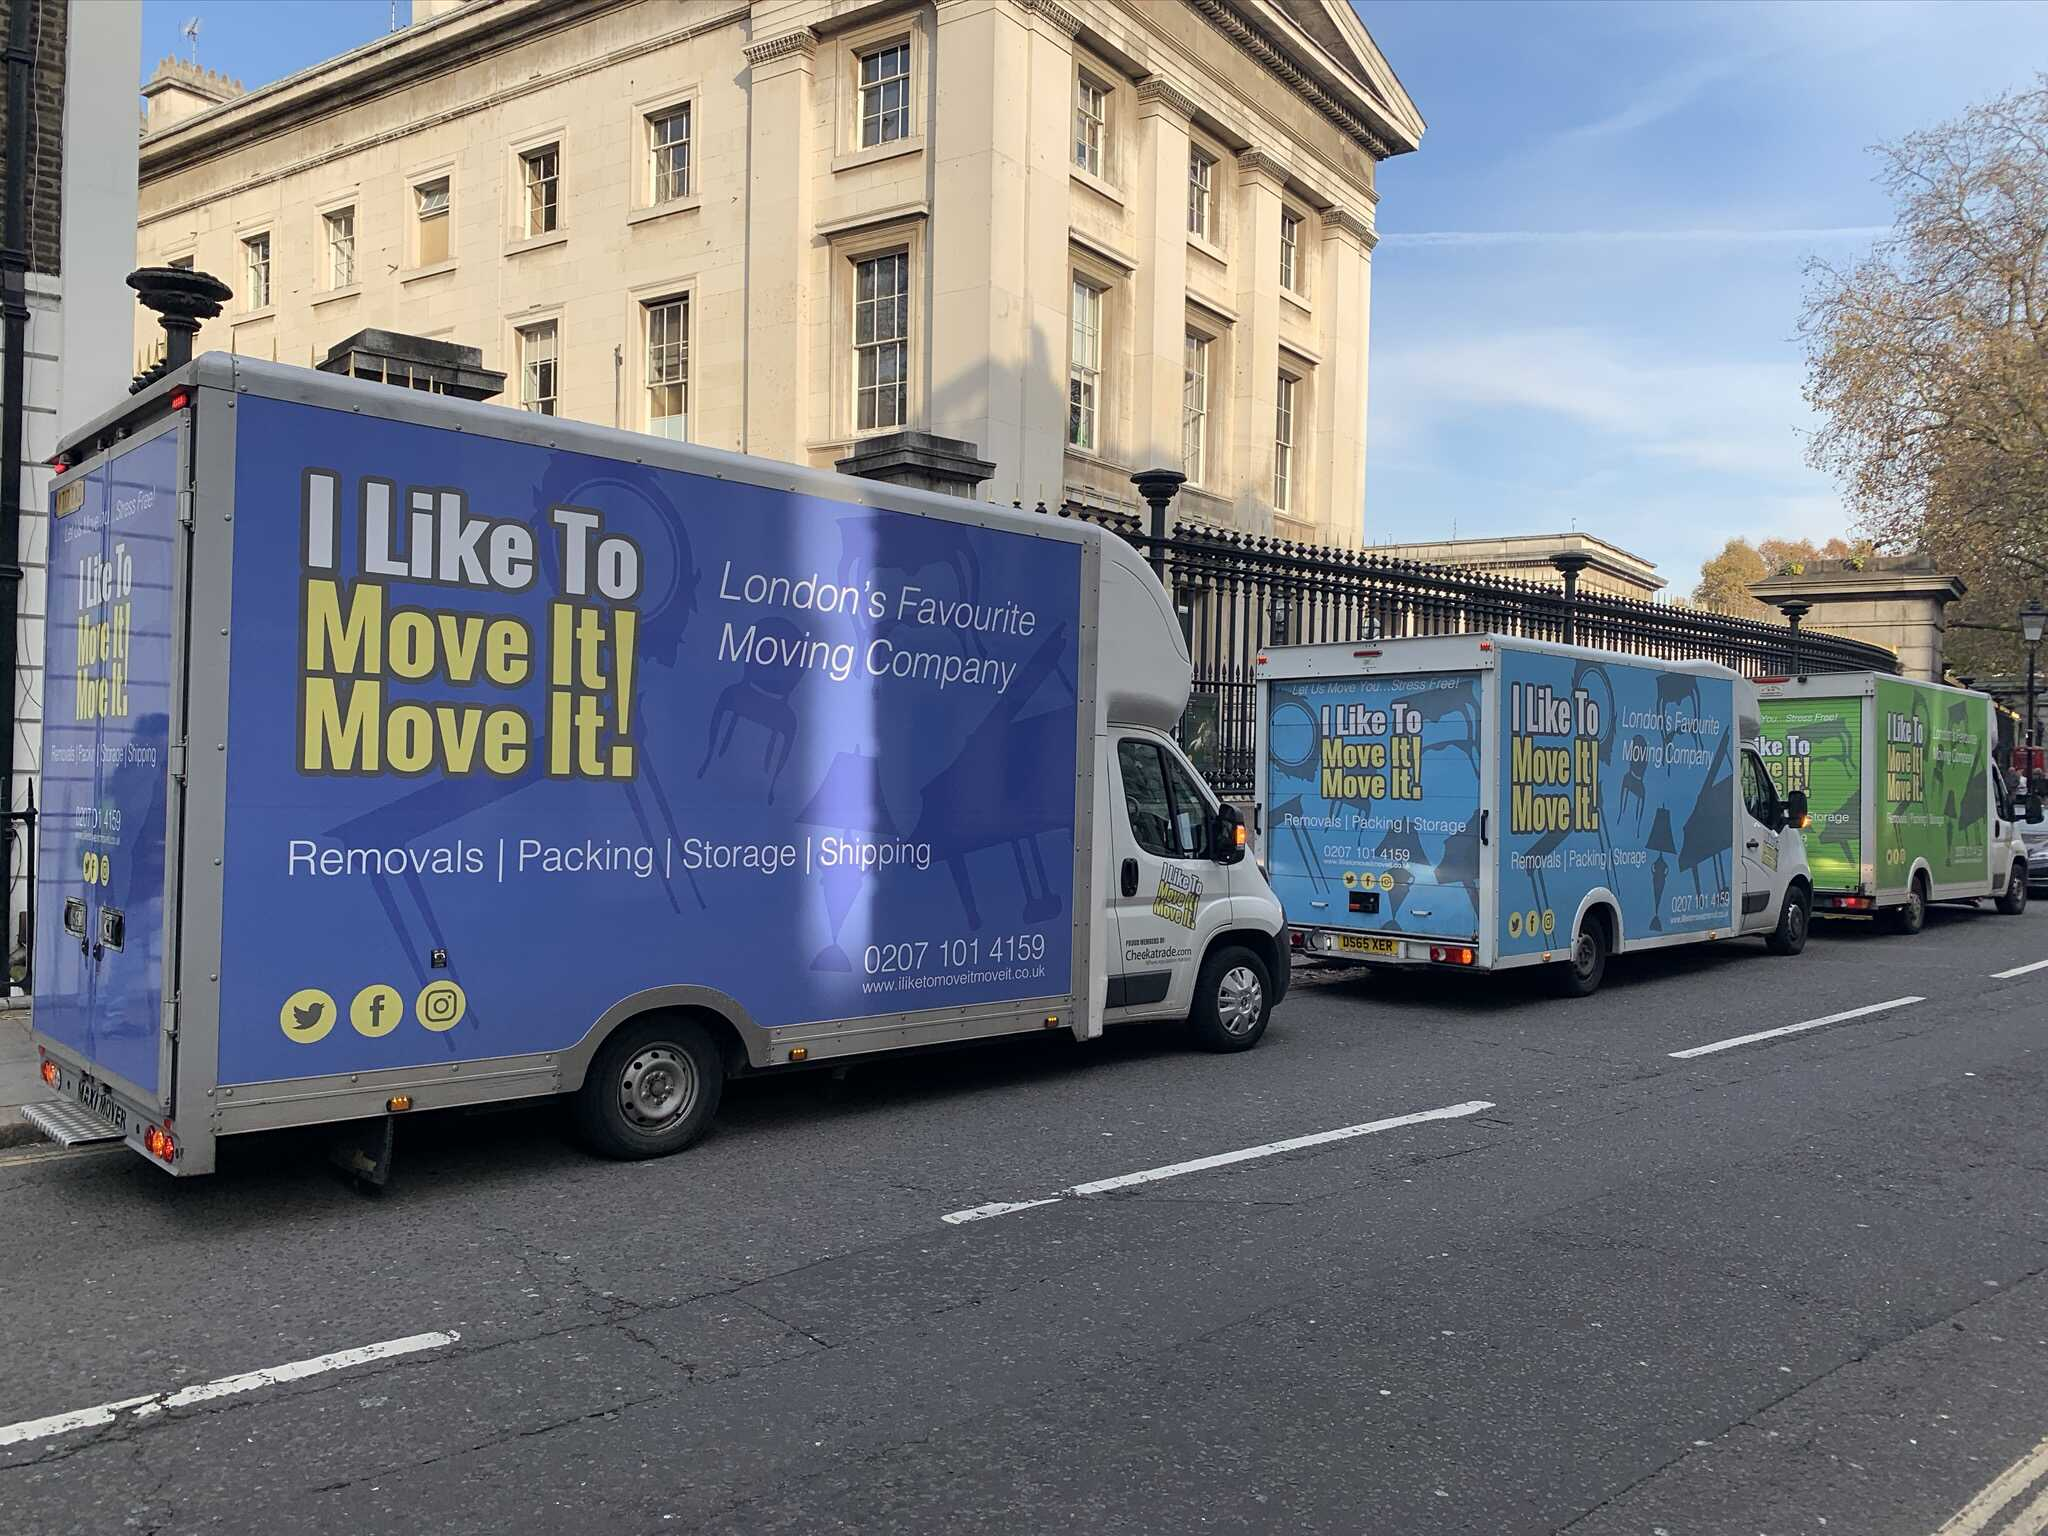 Three colourful branded removal vans parked outside a London listed building.